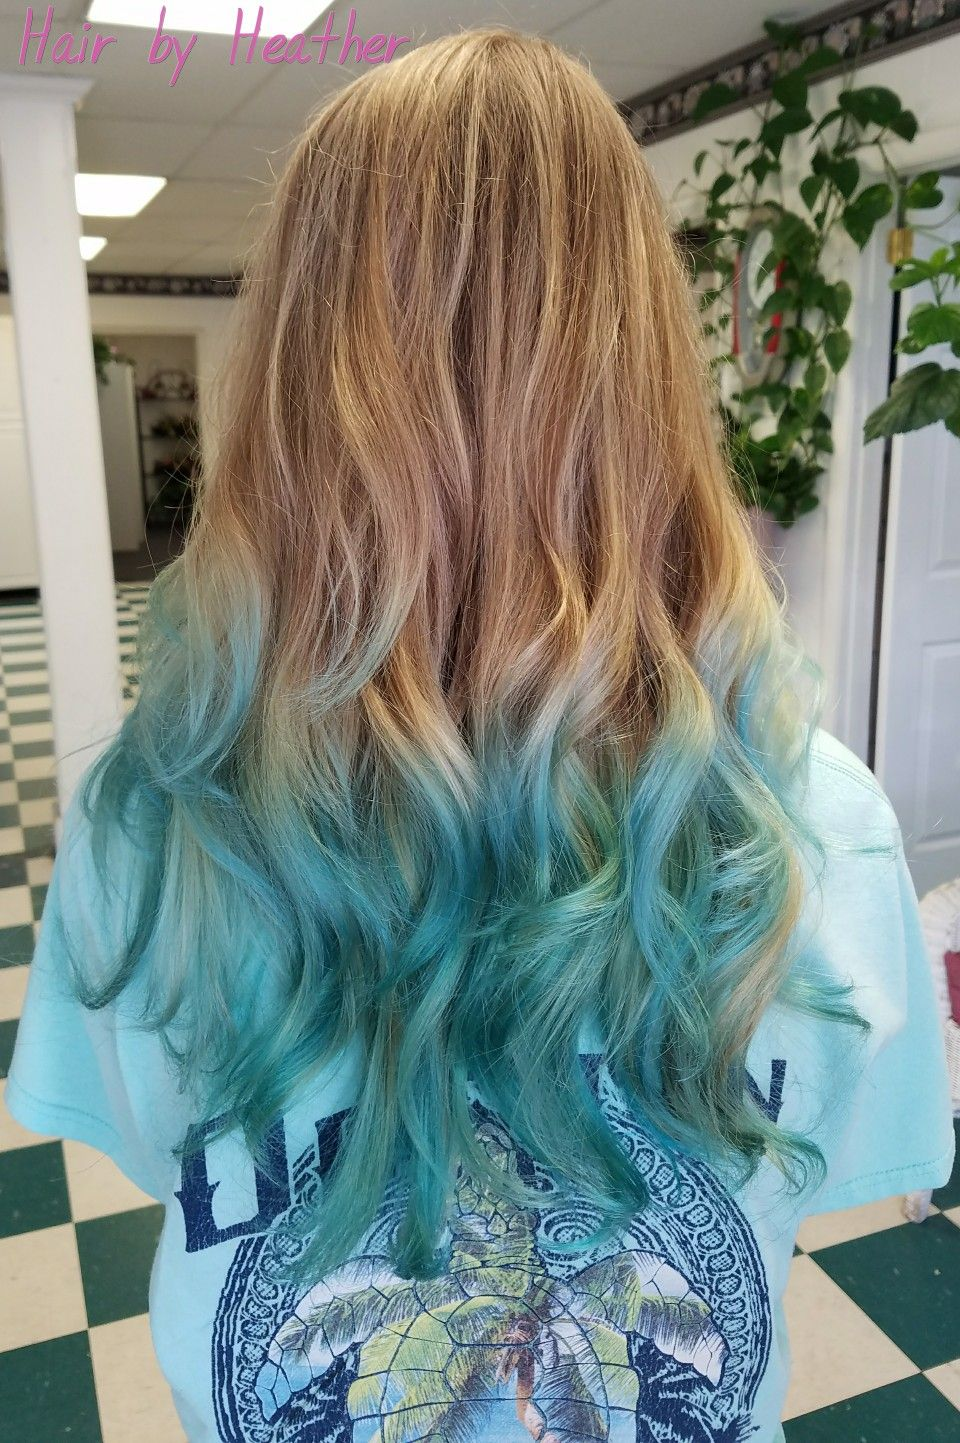 Teal Mermaid Hair Ombre Ombre Hair Blonde Colored Hair Tips